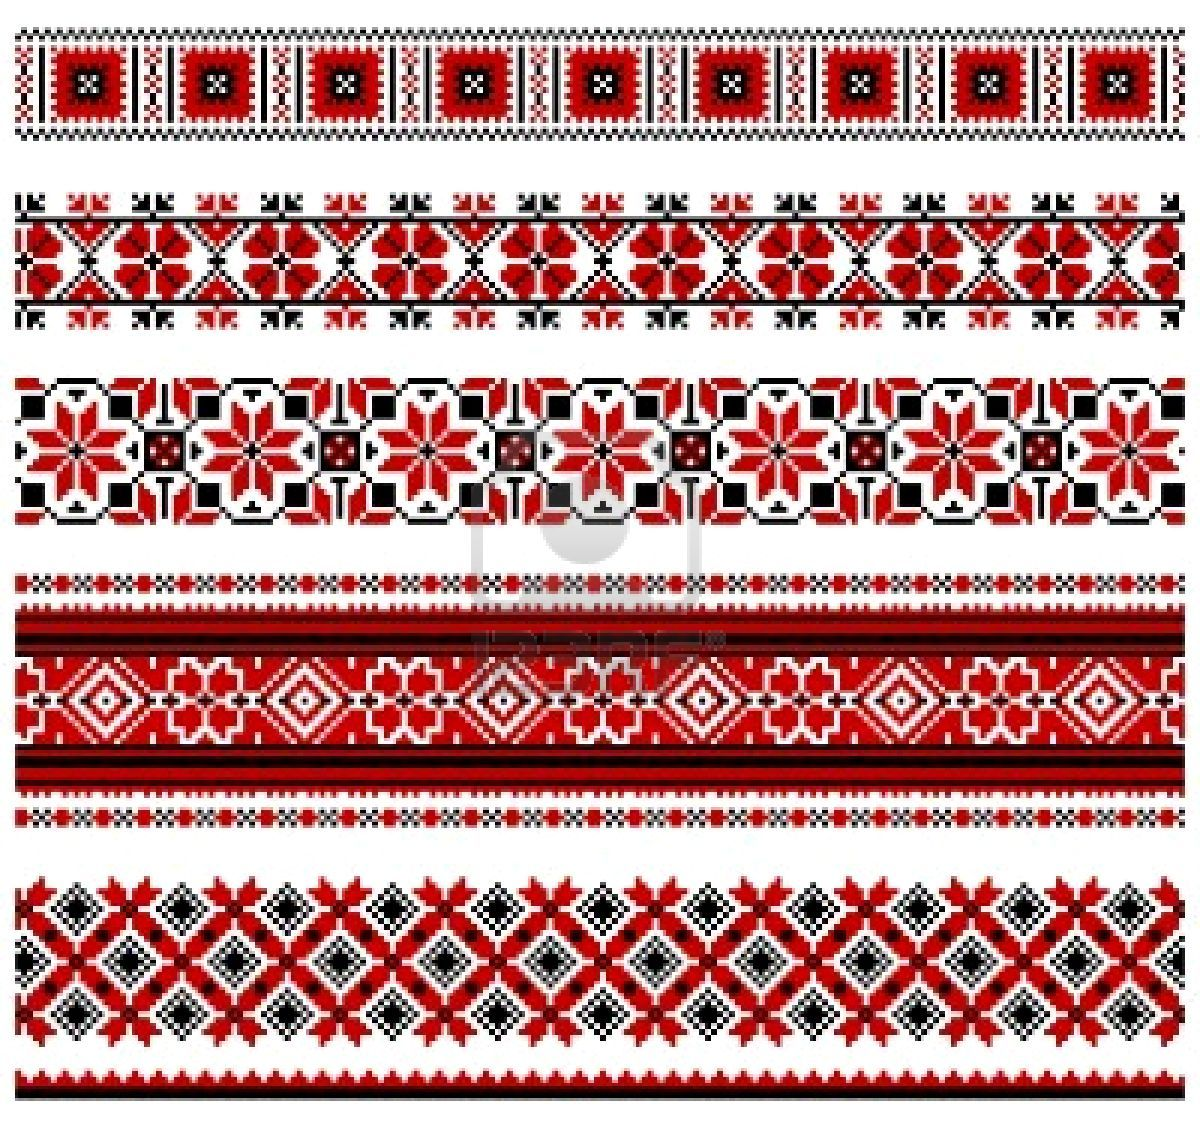 Russian Embroidery  Ornament Tiles  Patterns  Pinterest